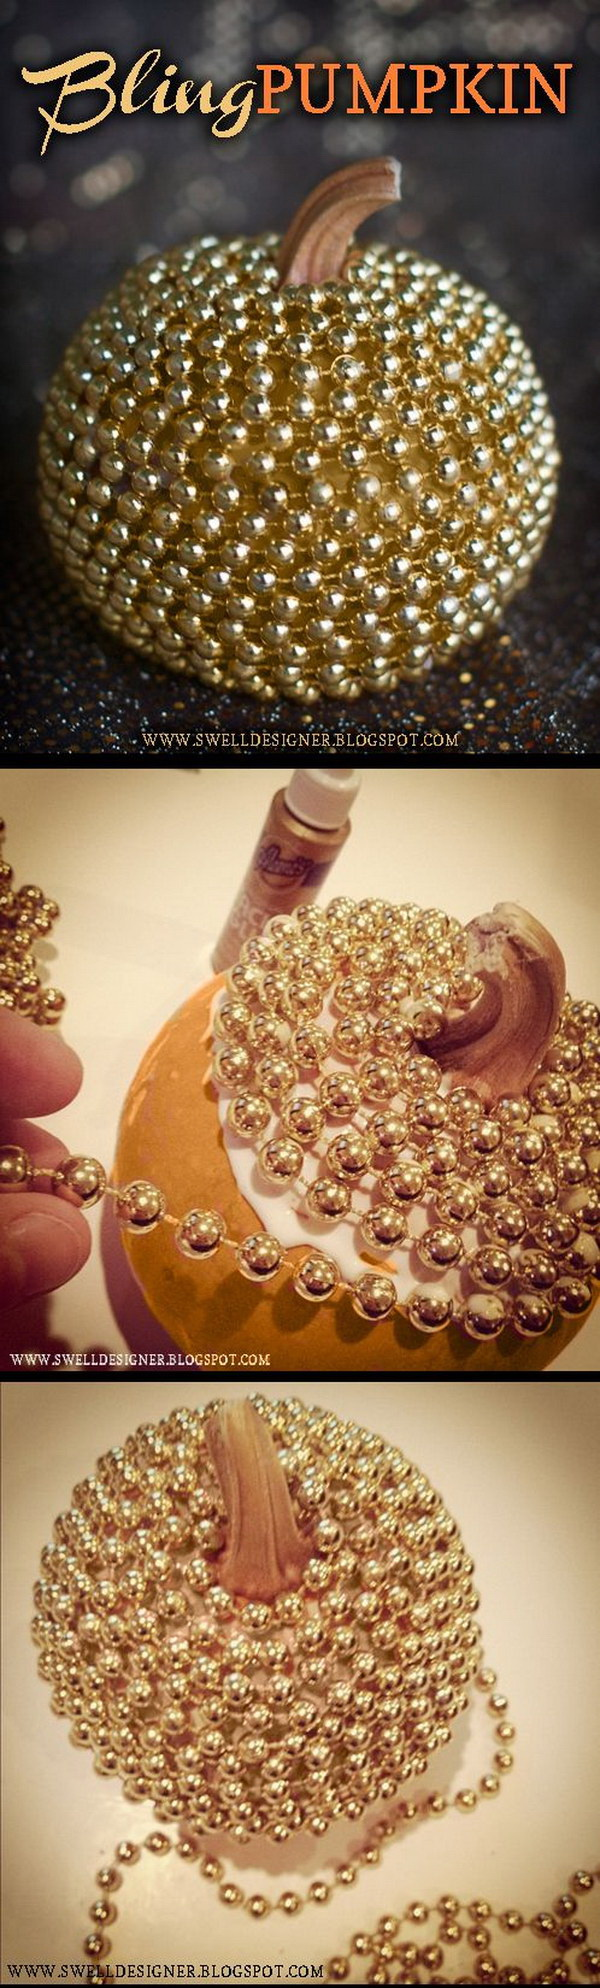 Gold Bling Metallic Pumpkins DIY. Make a cool and stylish metallic pumpkin in no time using Tacky Glue and a string of gold mardi gras beads. No-carving pumpkin decoration ideas! Stunning and eye-catching!